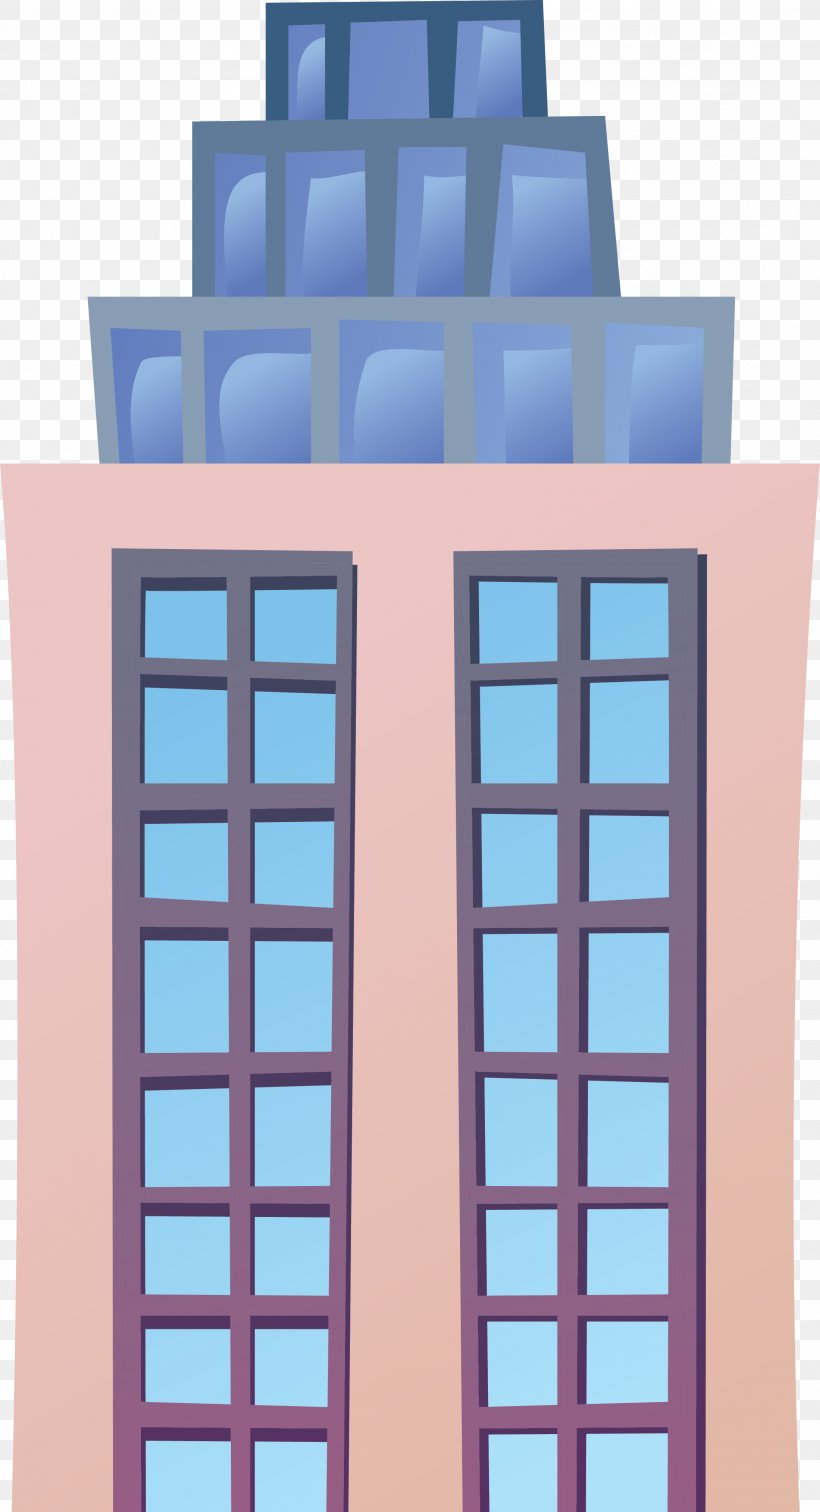 Window Building Facade Png 2198x4054px Window Animation Architecture Blue Building Download Free